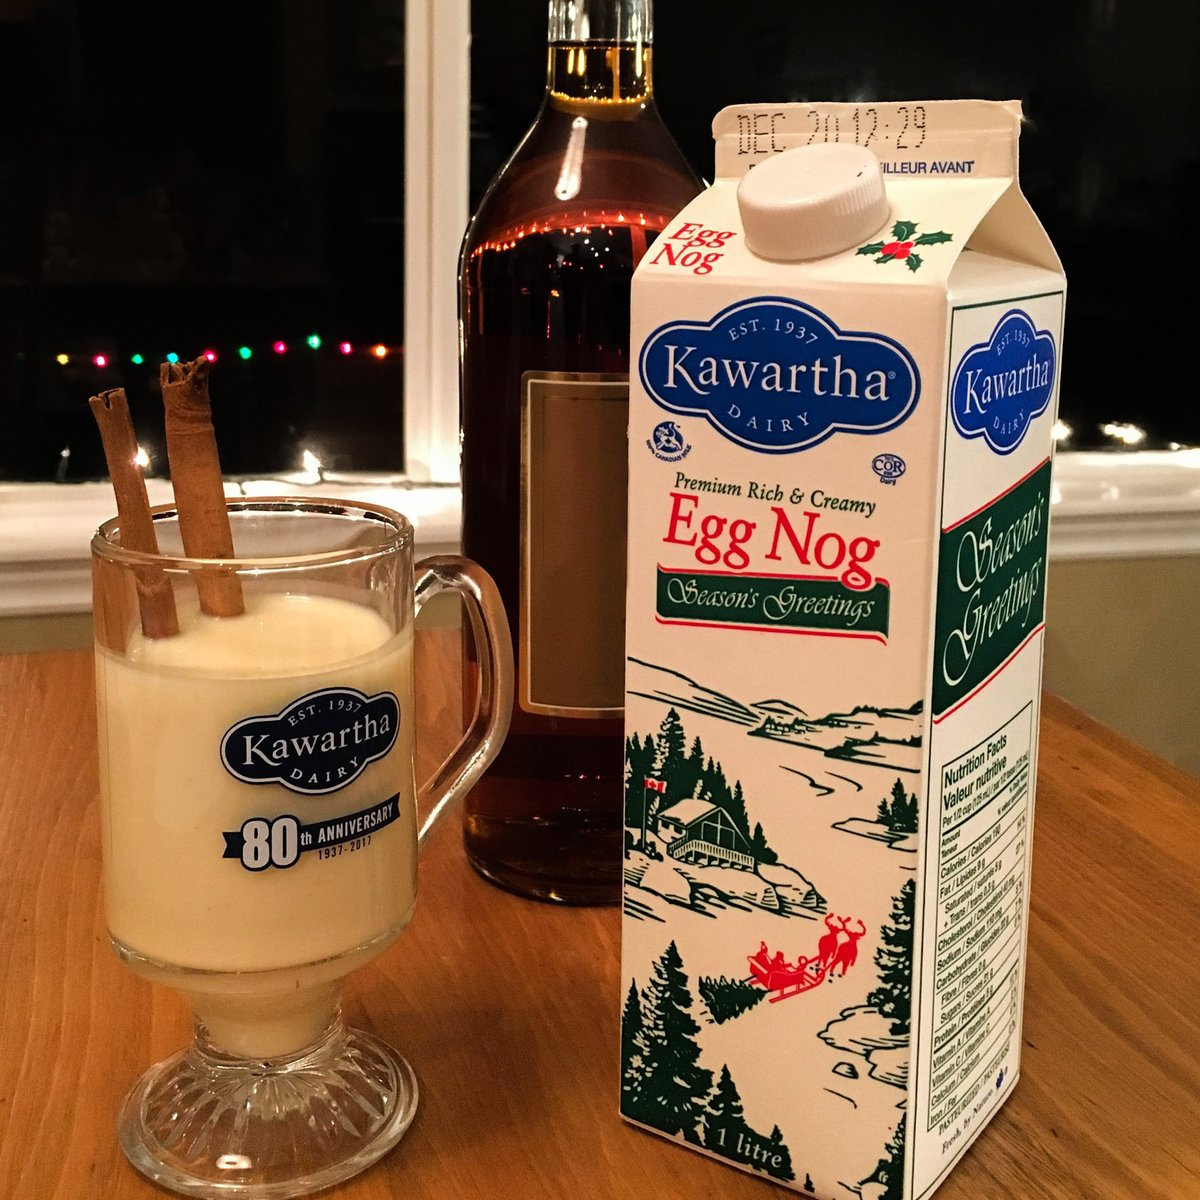 Kawartha Dairy On Twitter Oh Yeah Its Egg Nog Time They Say People Mix Other Stuff With It Sometimes